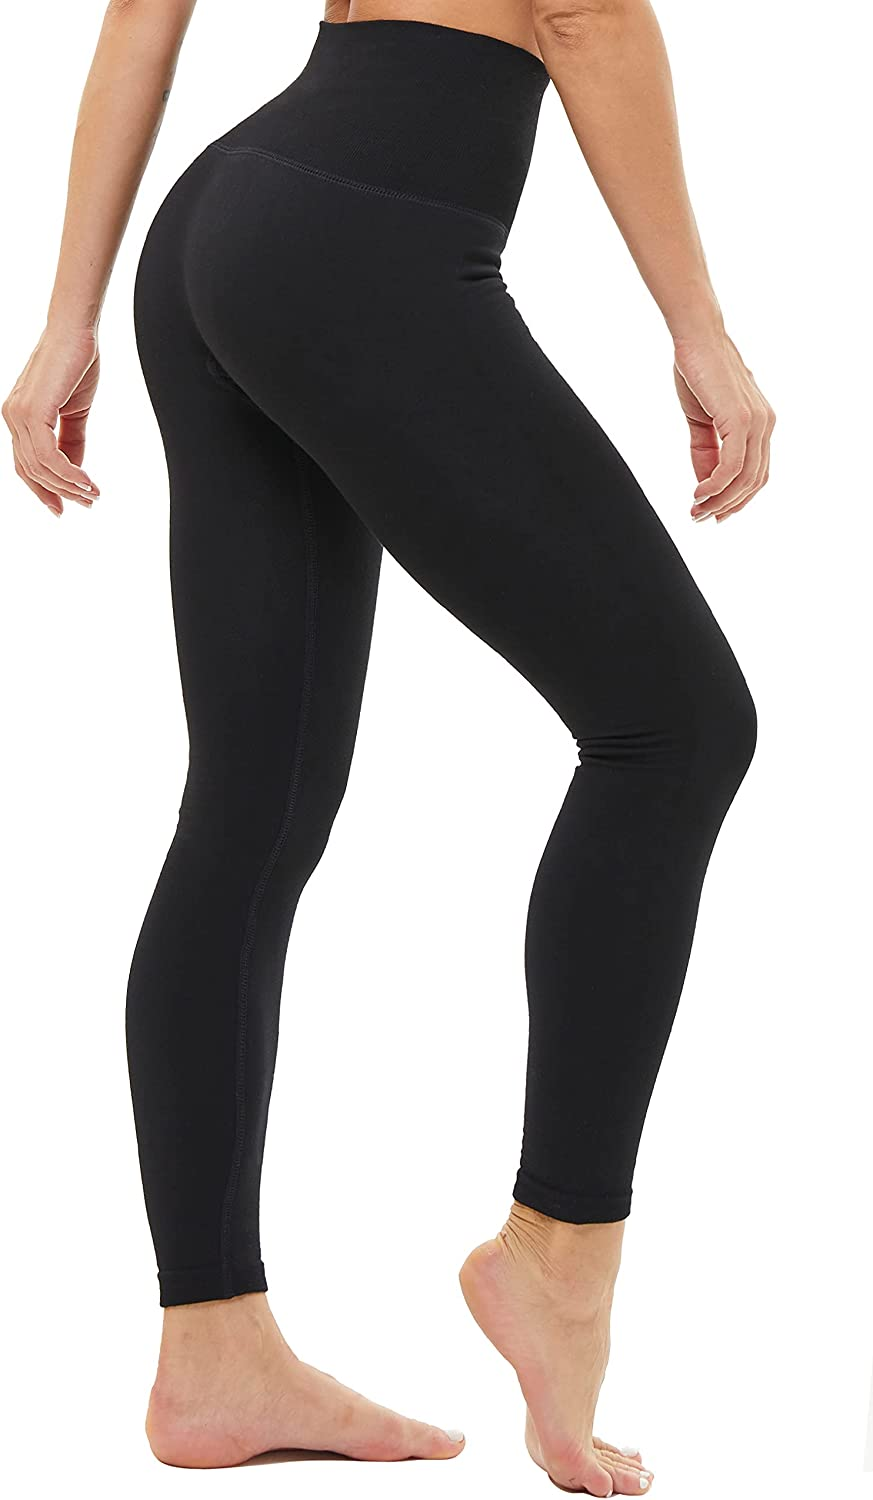 FLINXE Fleece Lined Tummy Control Leggings for Women High Waisted Thick Winter Warm Seamless Slimming Leggings